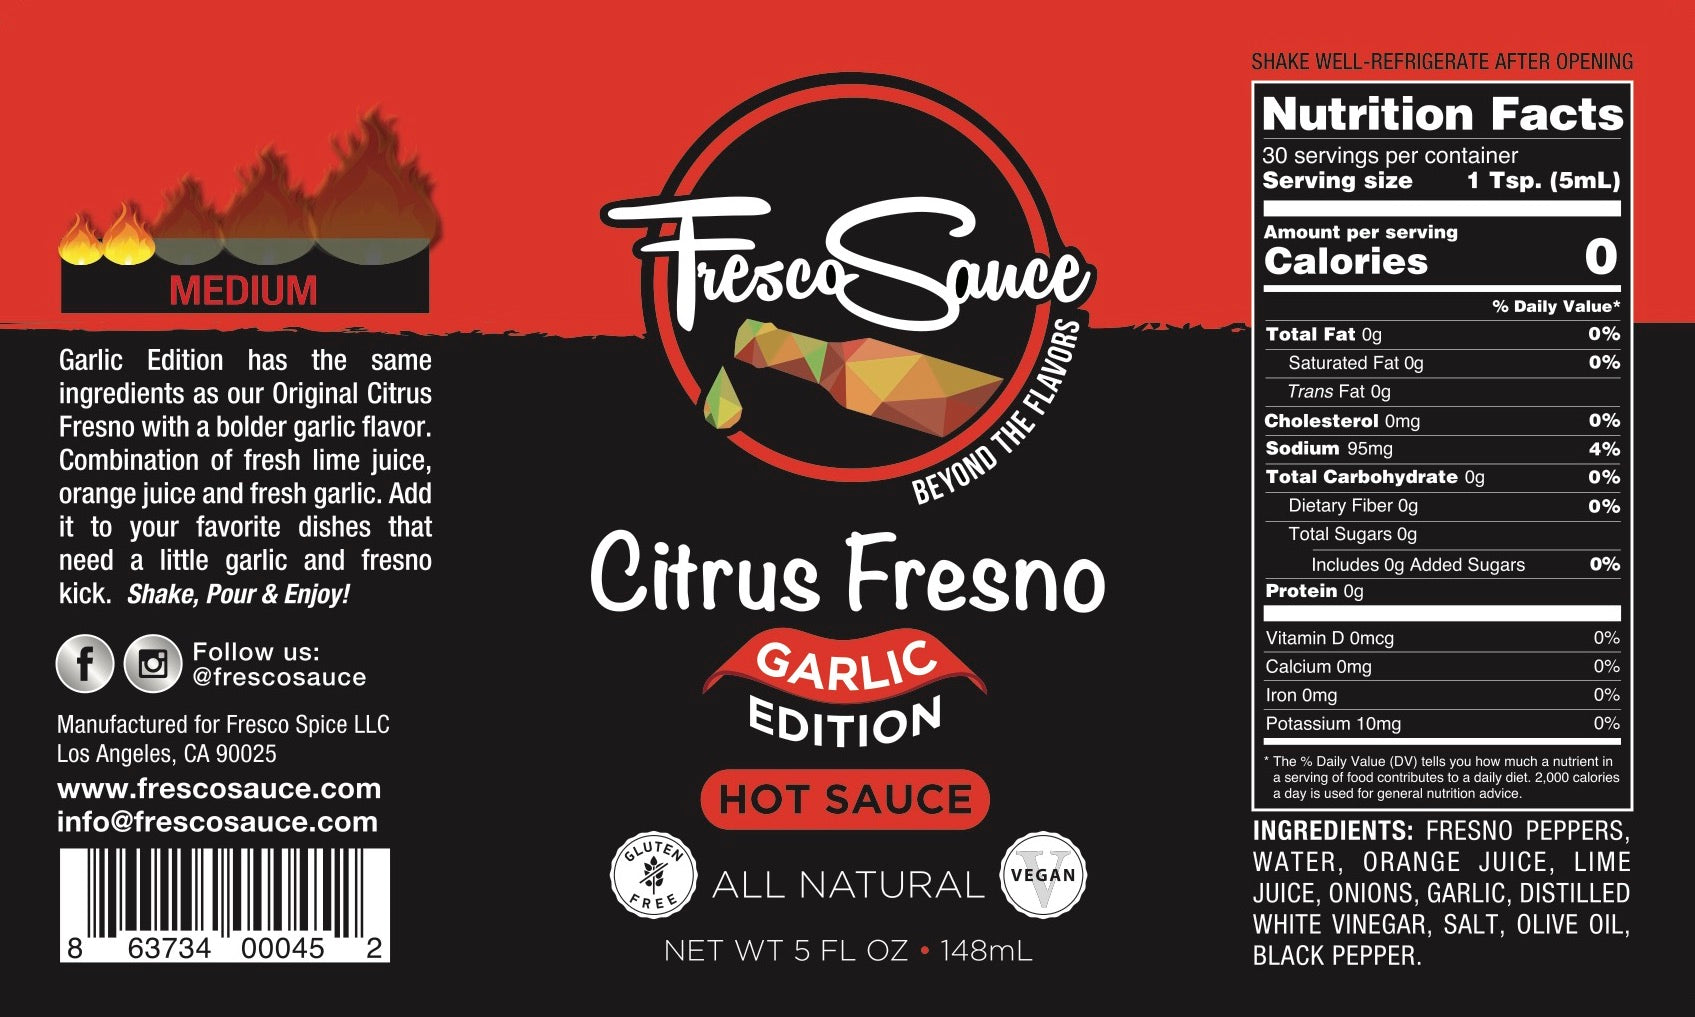 Garlic Edition - Citrus Fresno Hot Sauce